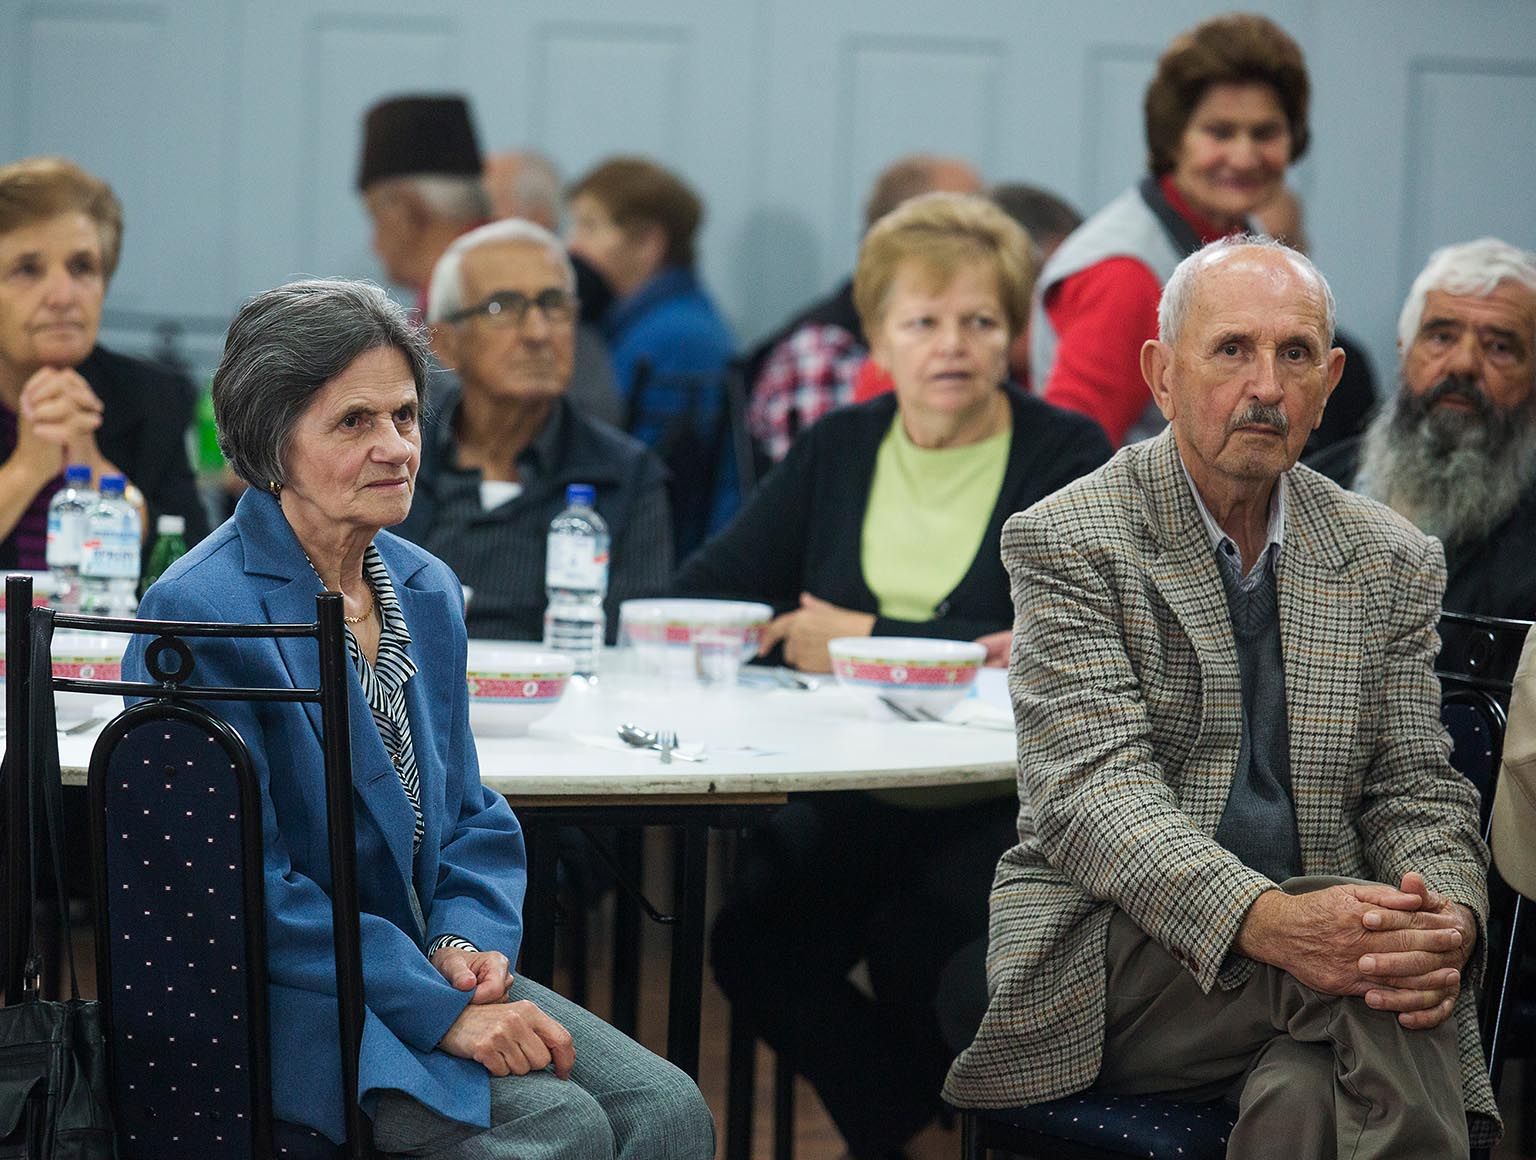 Photo of six older people sitting at a round table as part of an audience, watching a point behind the camera, other audience members sitting at tables in the background.